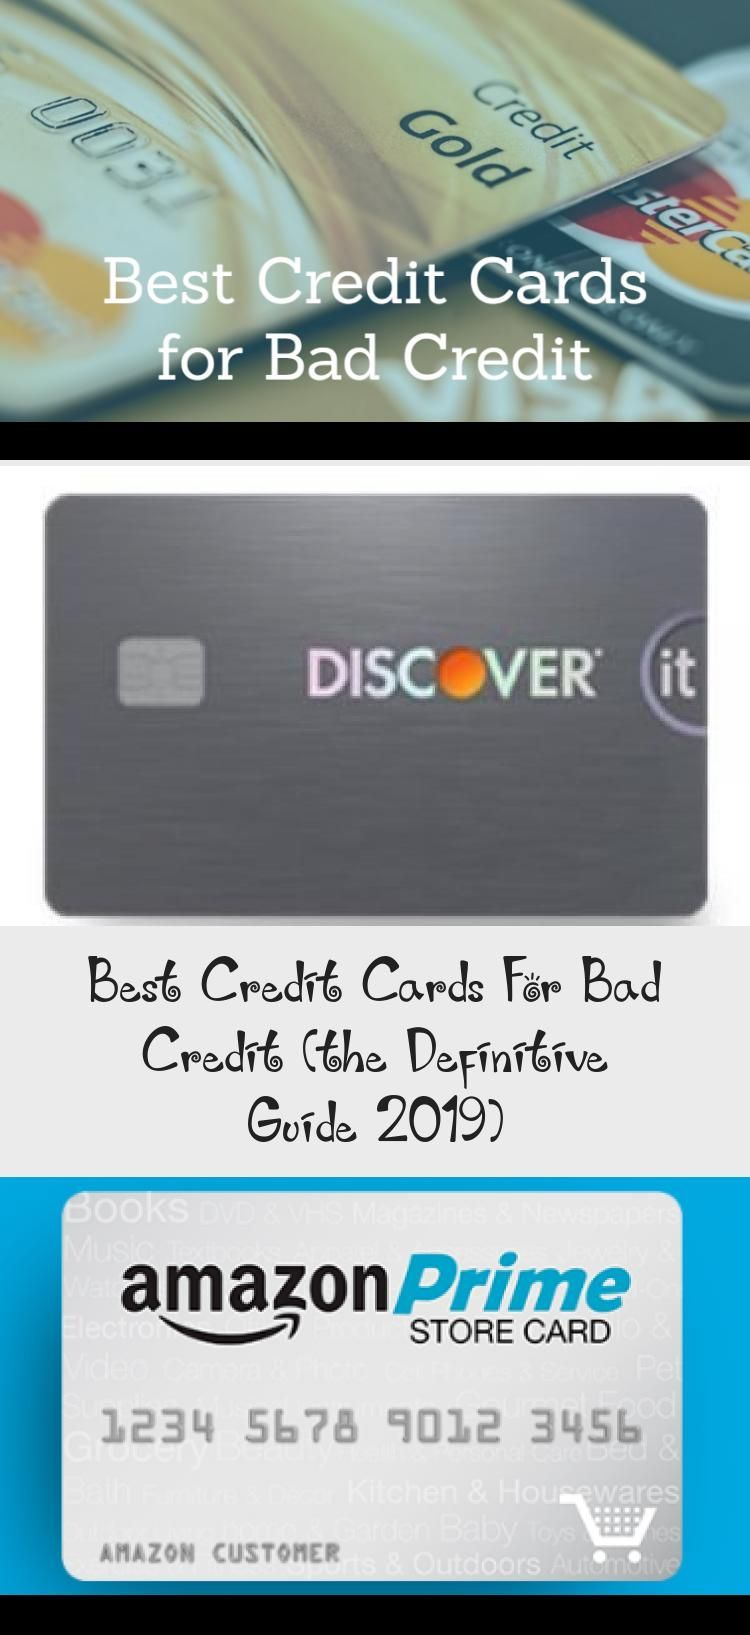 Best Credit Cards For Bad Credit The Definitive Guide 2019